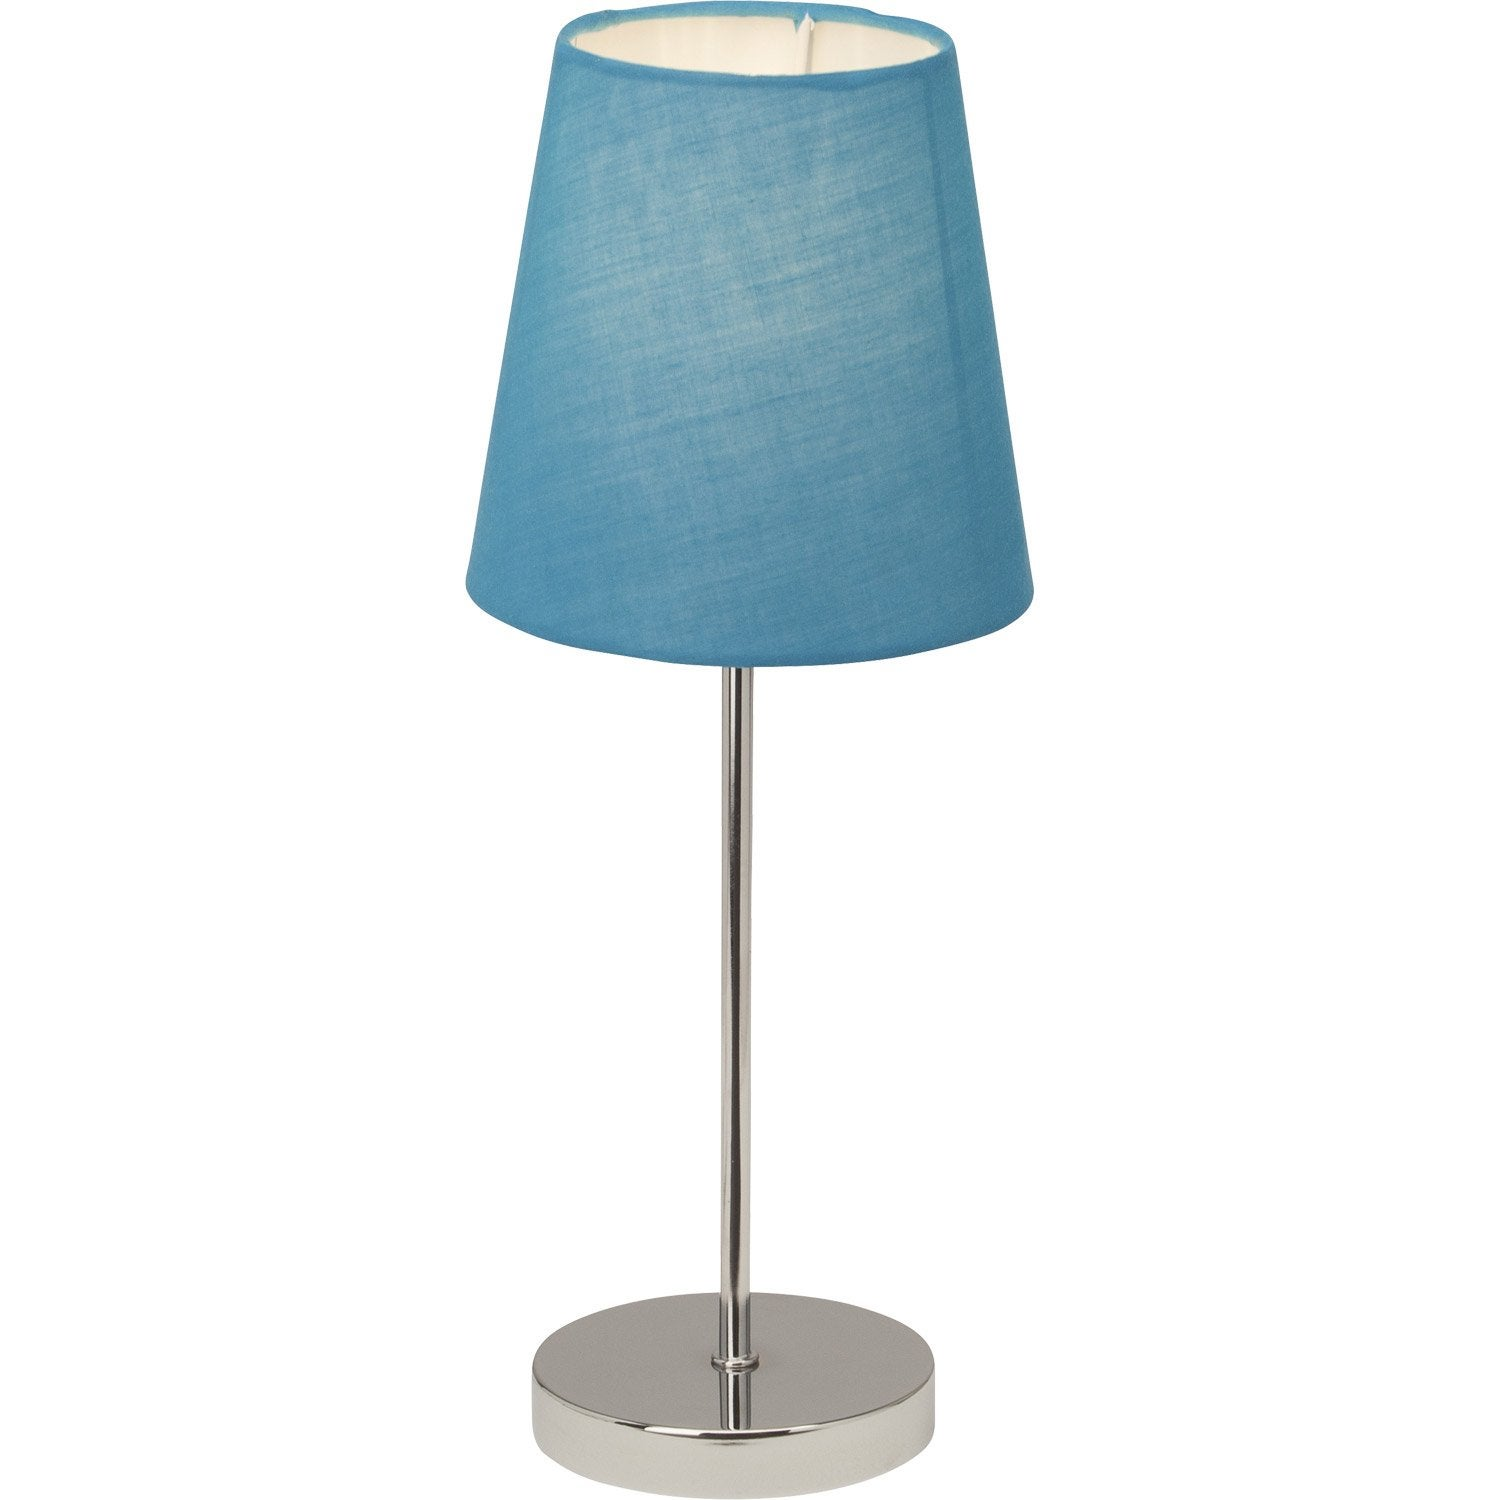 lampe tactile kasha brilliant tissu bleu 40 w leroy merlin. Black Bedroom Furniture Sets. Home Design Ideas